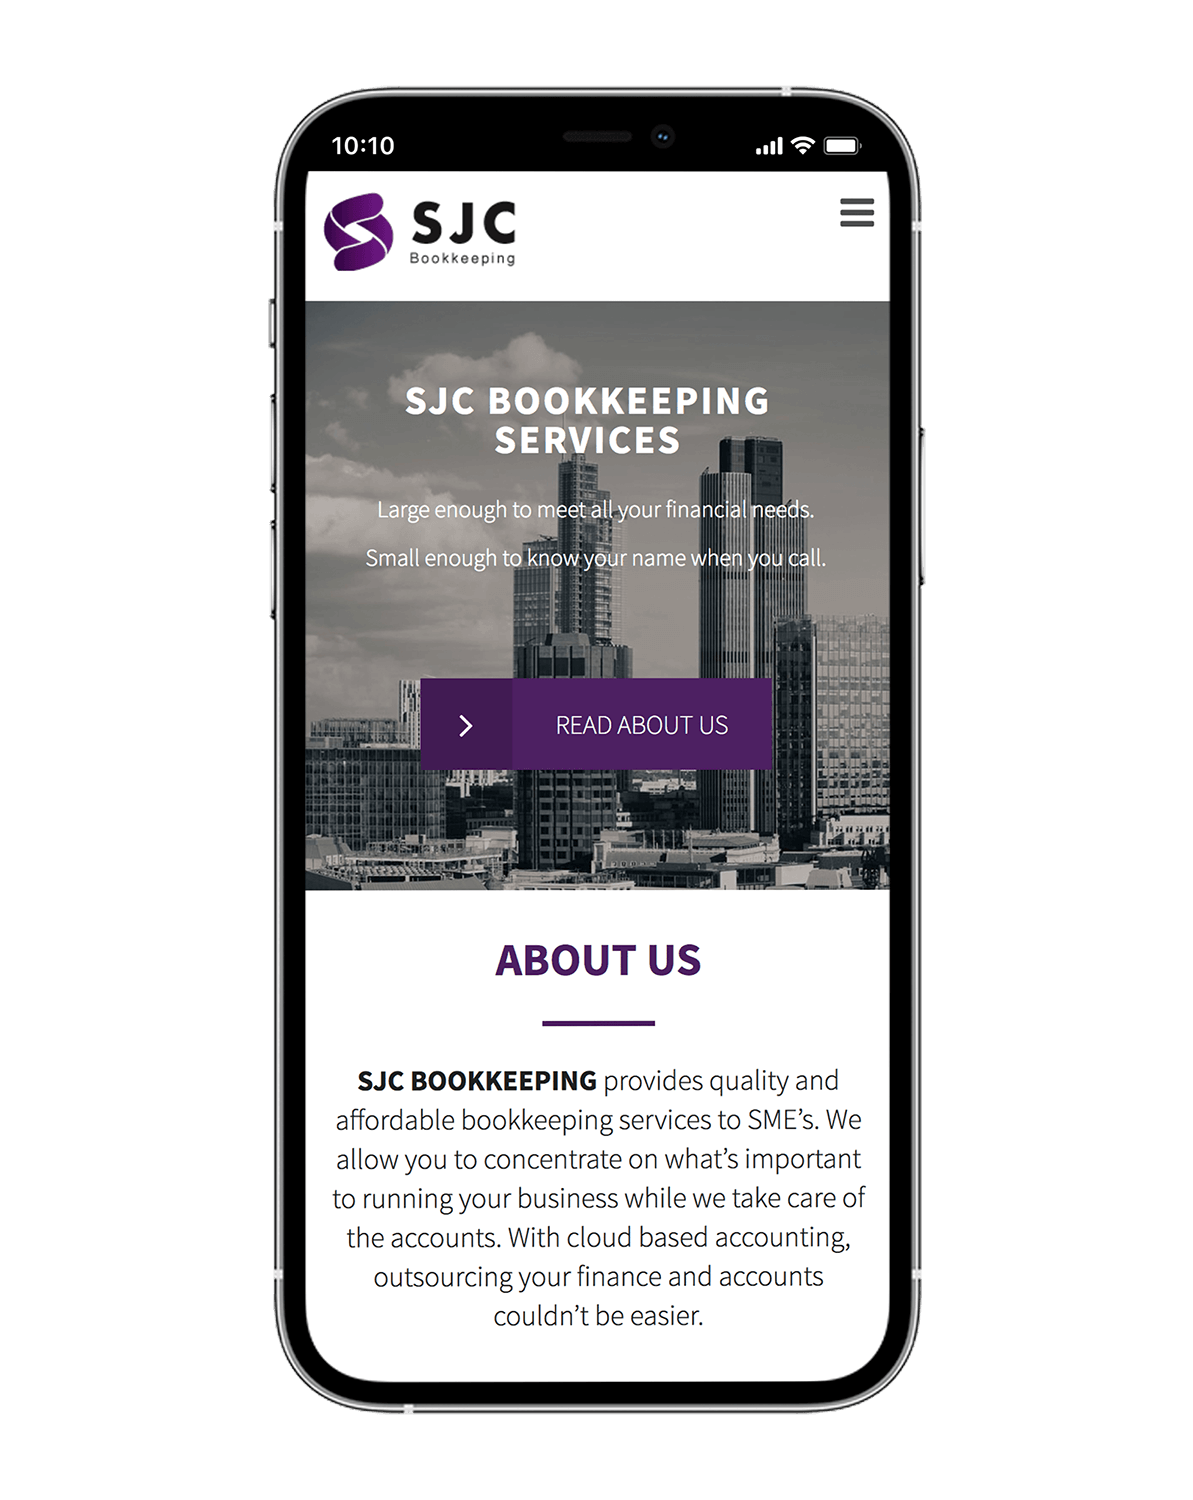 SJC Bookkeeping Design